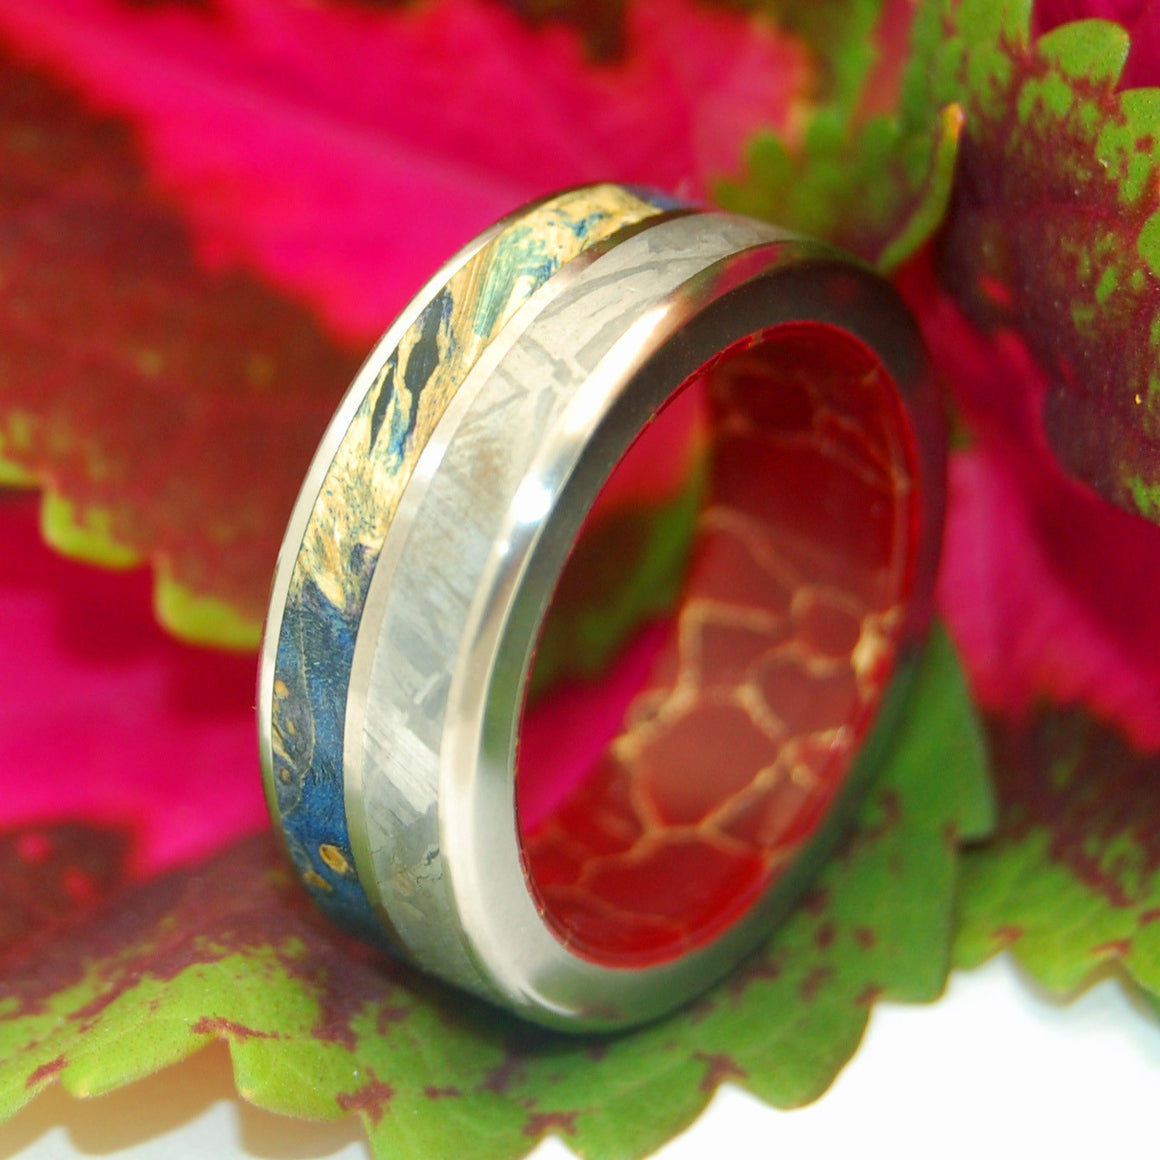 LOVE SUPERPOWER | Meteorite, Blue Box Elder Wood & Red Jasper Stone Unique Titanium Wedding Rings - Minter and Richter Designs